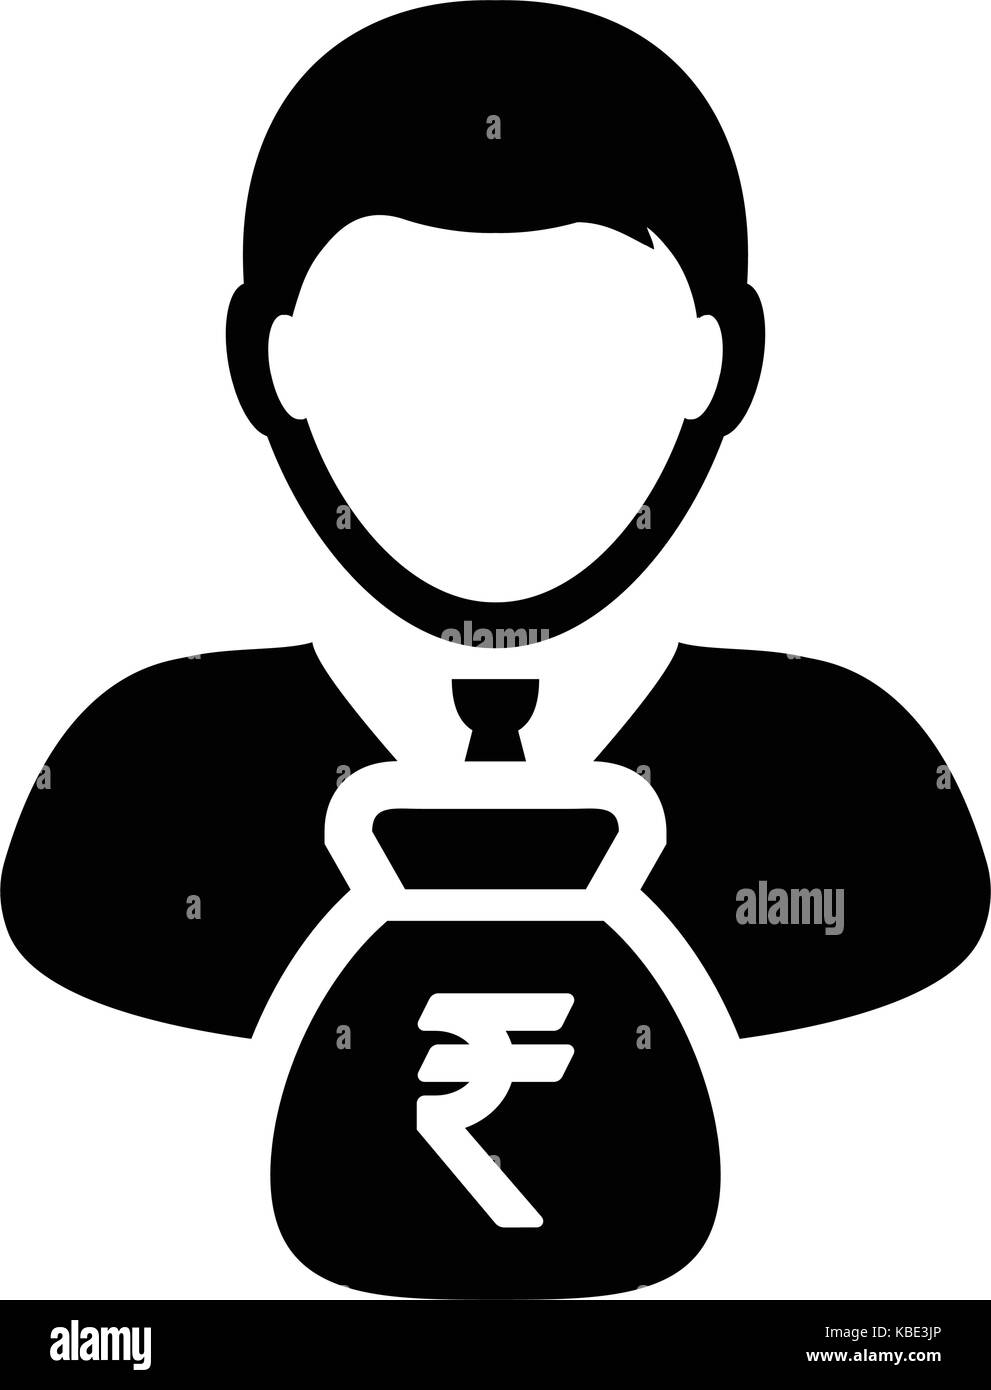 Indian Rupee Sign Icon Vector Person Male Avatar Symbol With Money